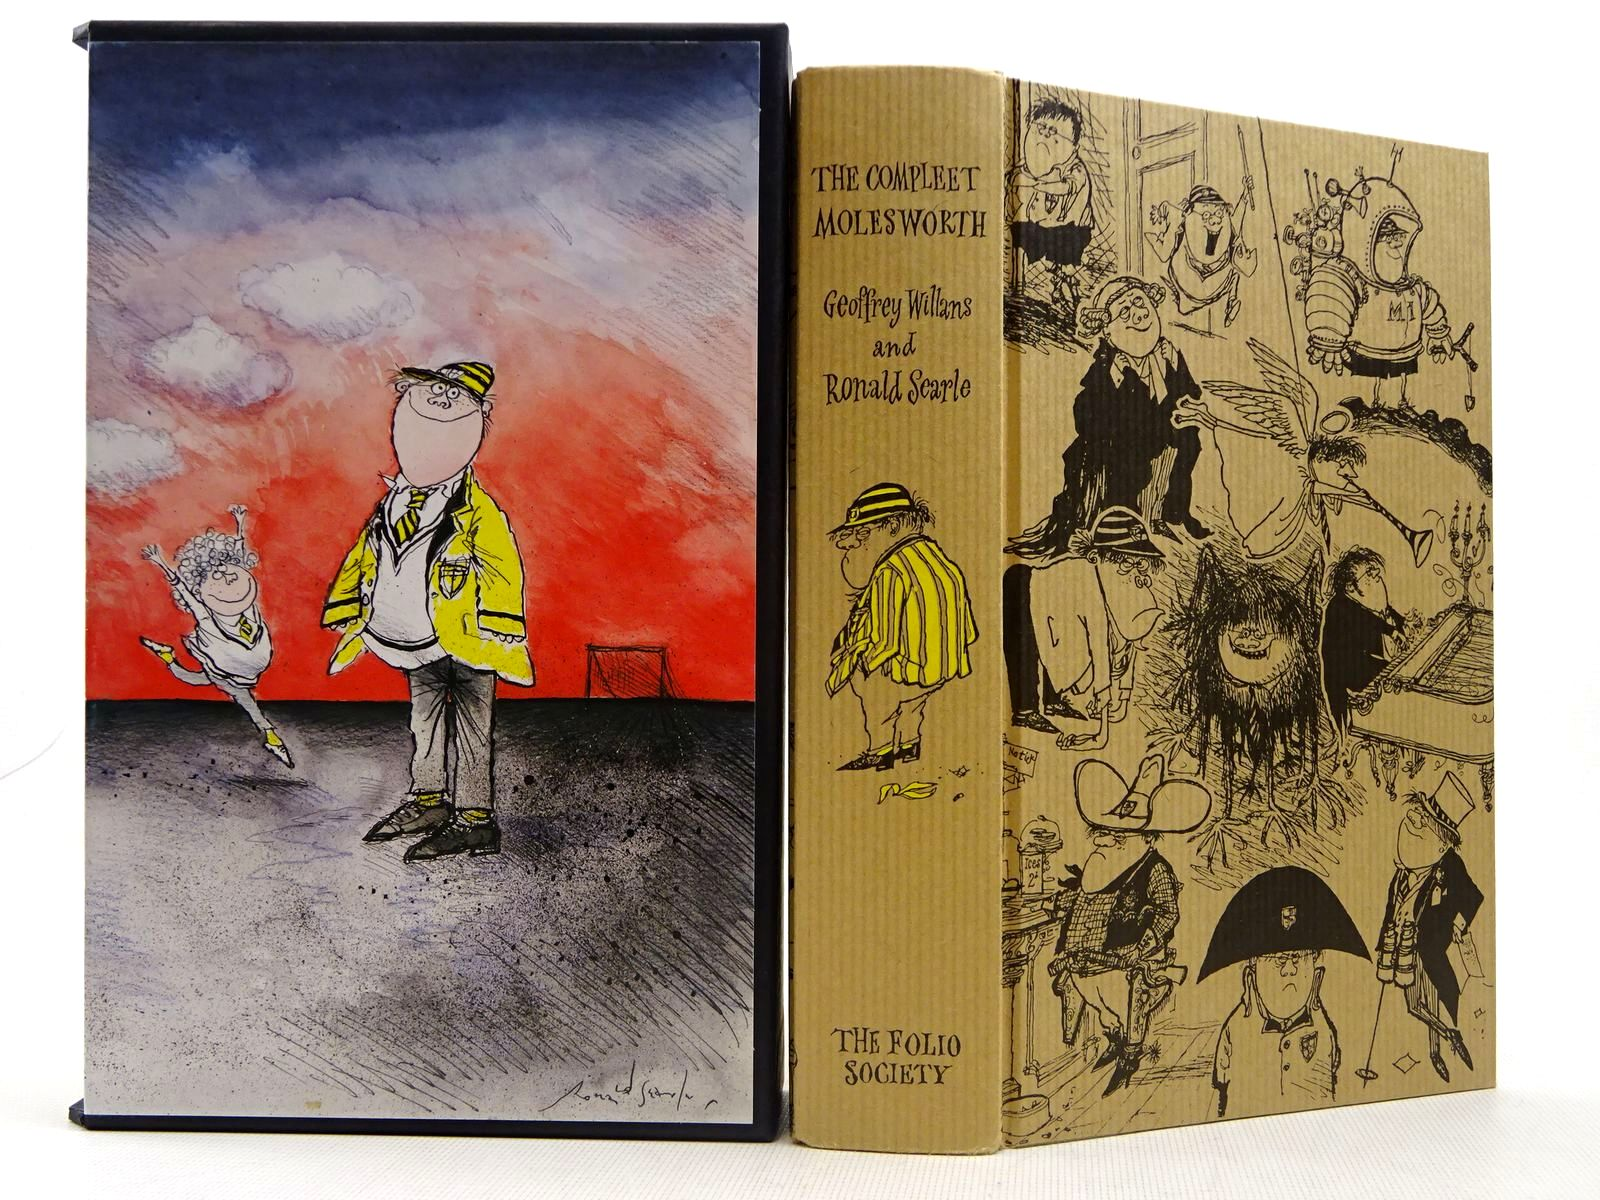 Photo of THE COMPLEET MOLESWORTH written by Willans, Geoffrey illustrated by Searle, Ronald published by Folio Society (STOCK CODE: 2129380)  for sale by Stella & Rose's Books